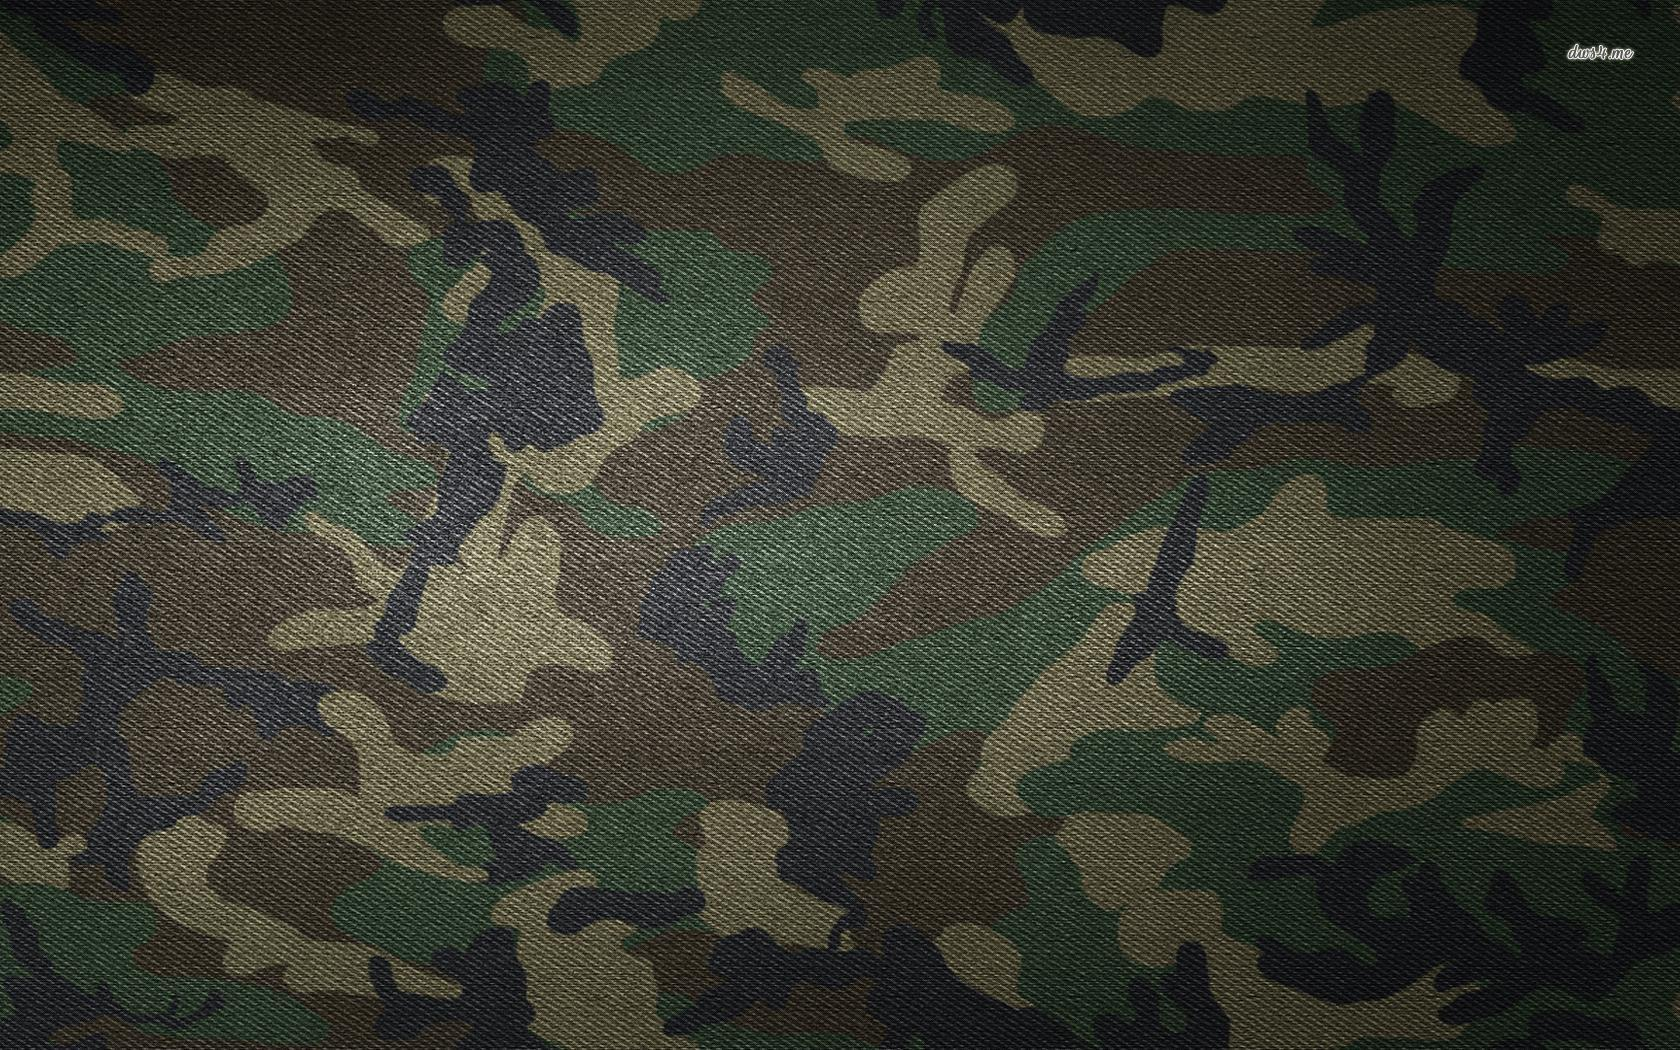 Camo Backgrounds - Wallpaper Cave